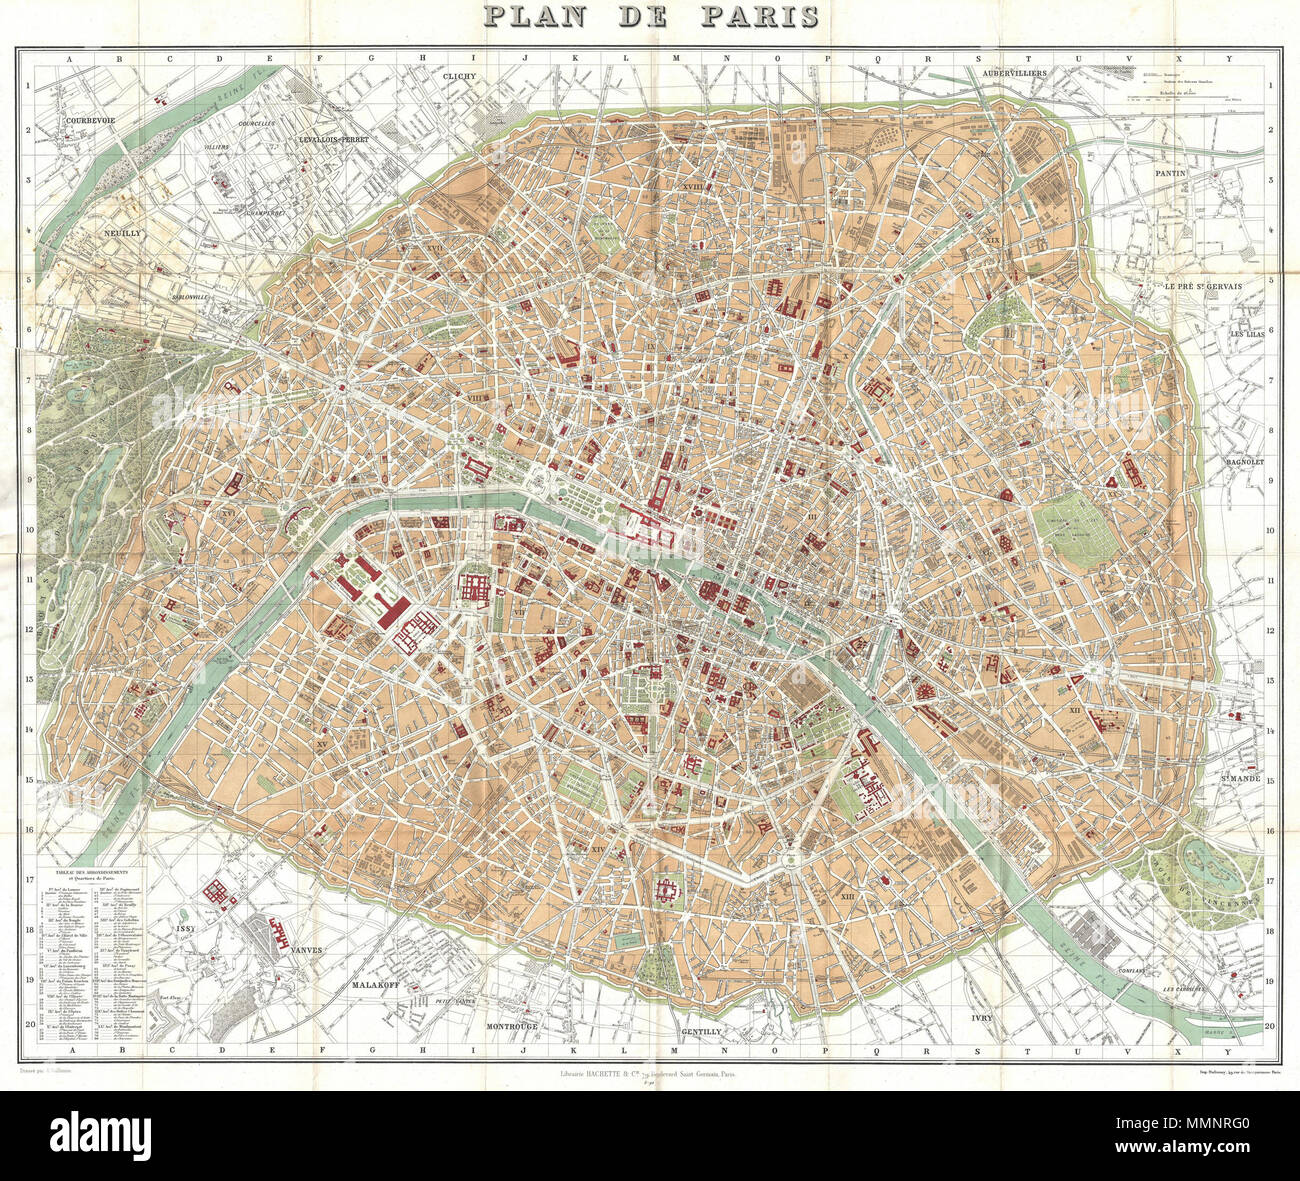 English: This is a large format folding map of Paris dating